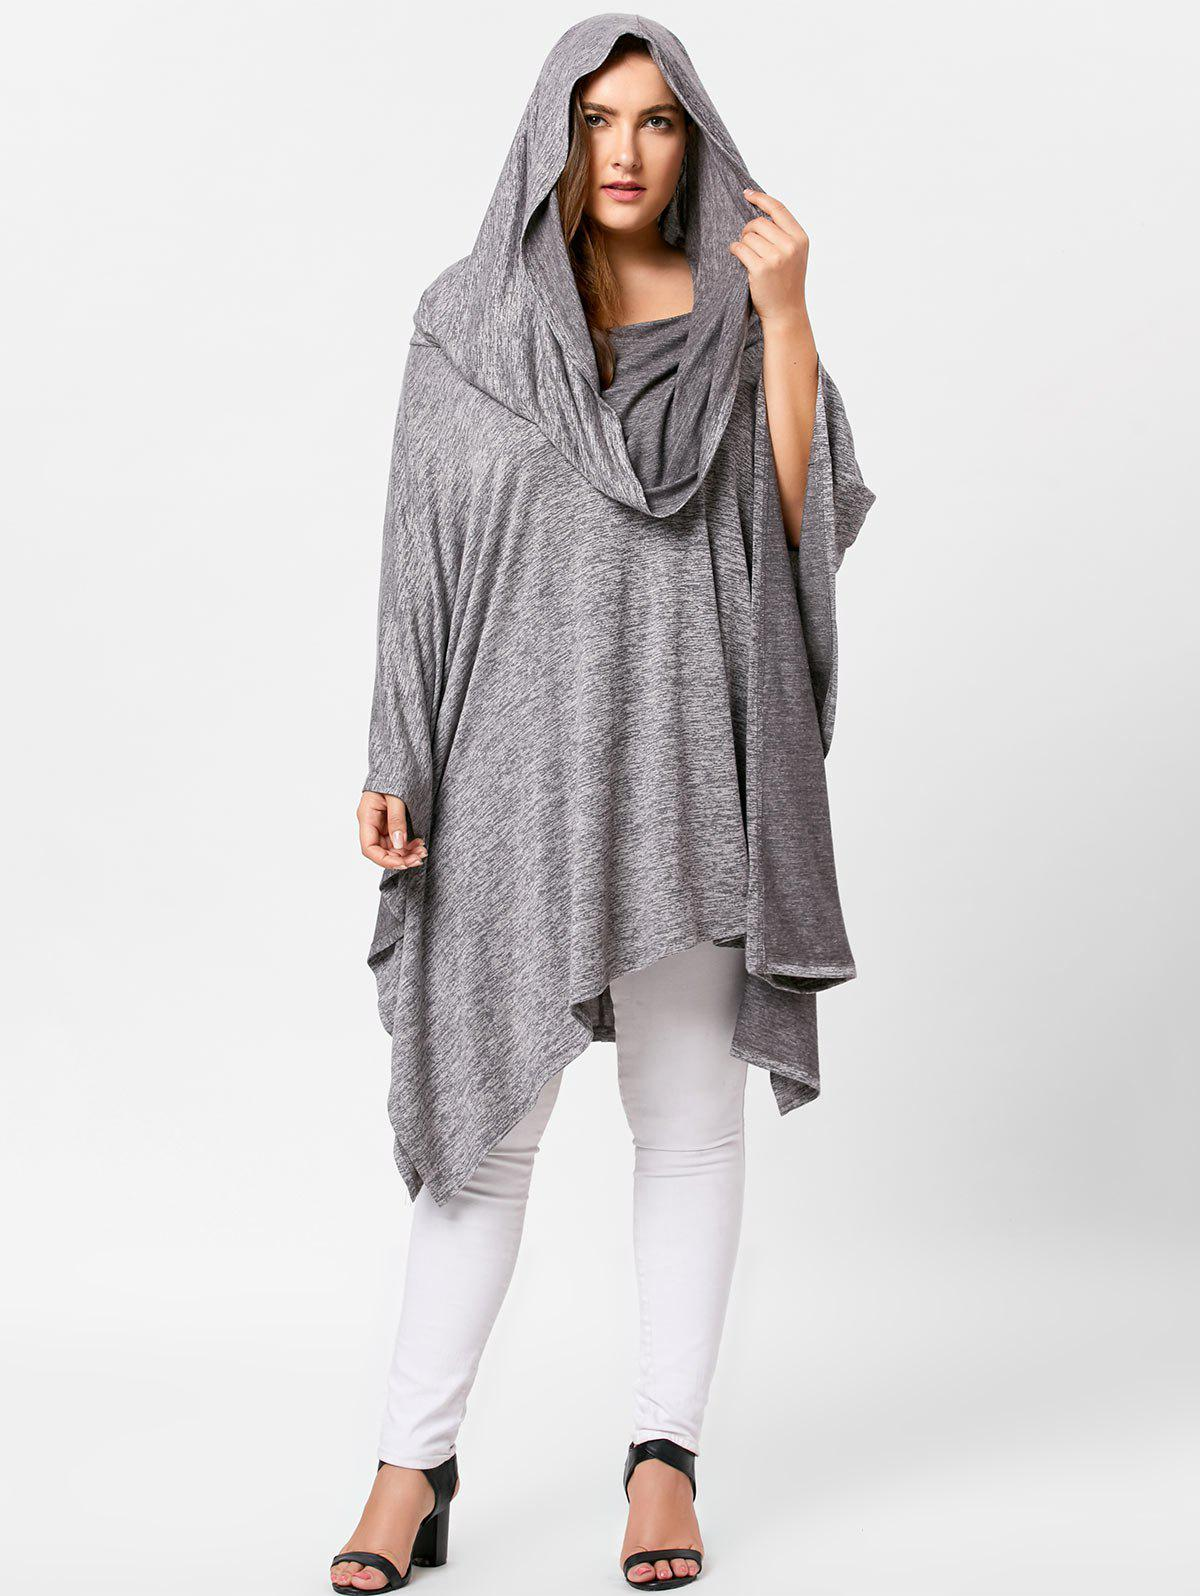 Plus Size New Arrivals  Tops Dresses Jeans  Forever 21